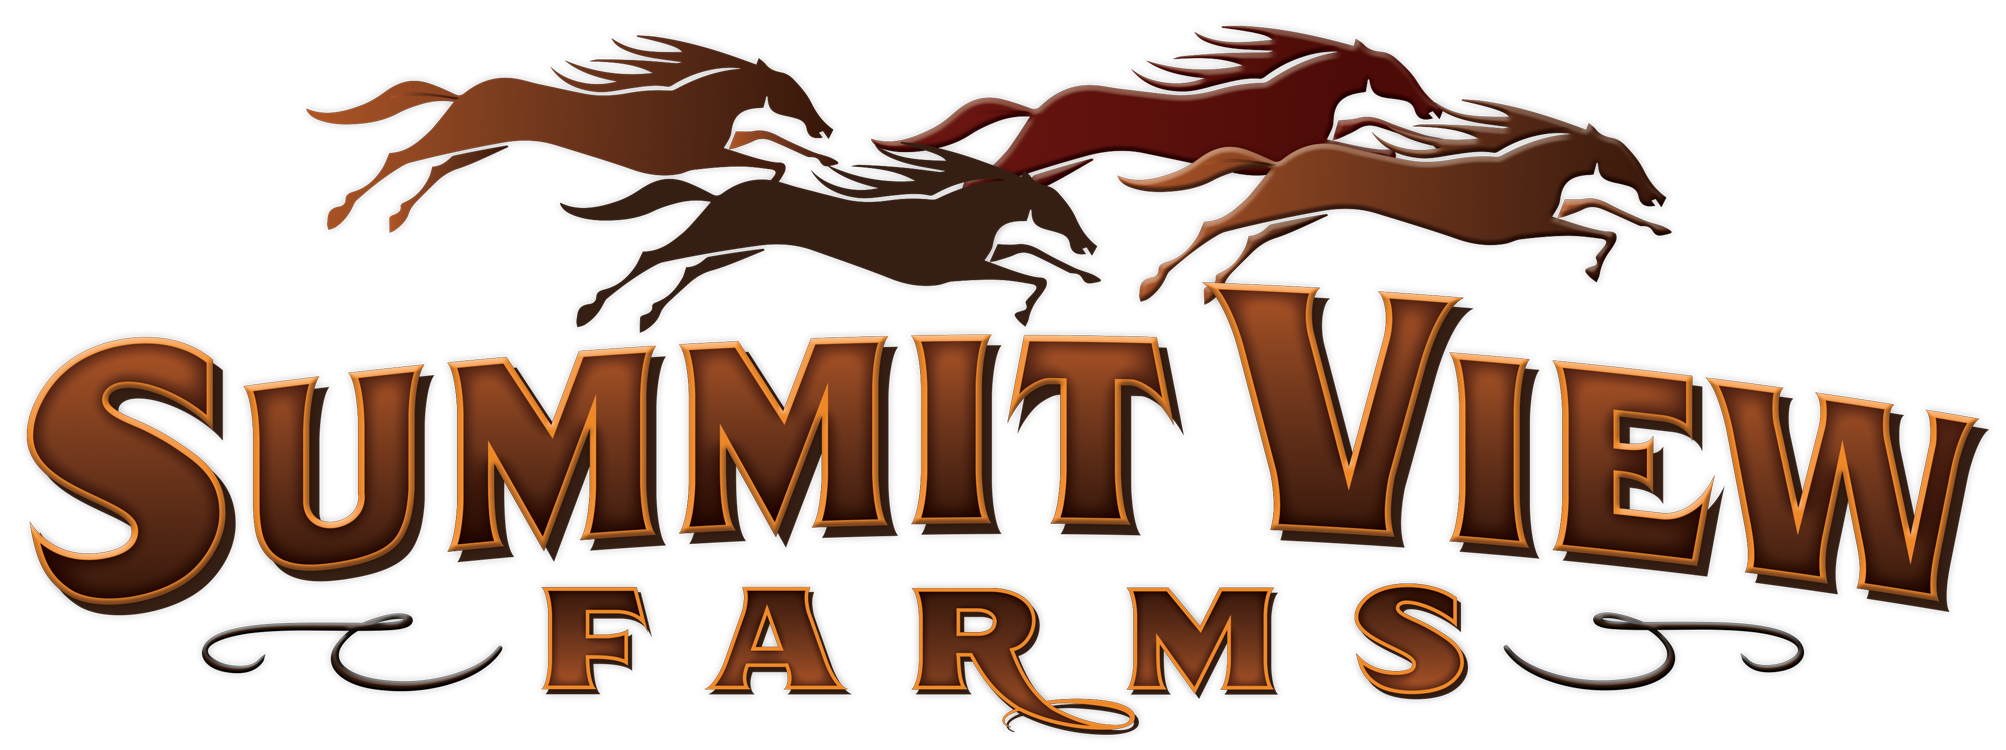 Summit clipart interactive View Farms Summit Map Logo